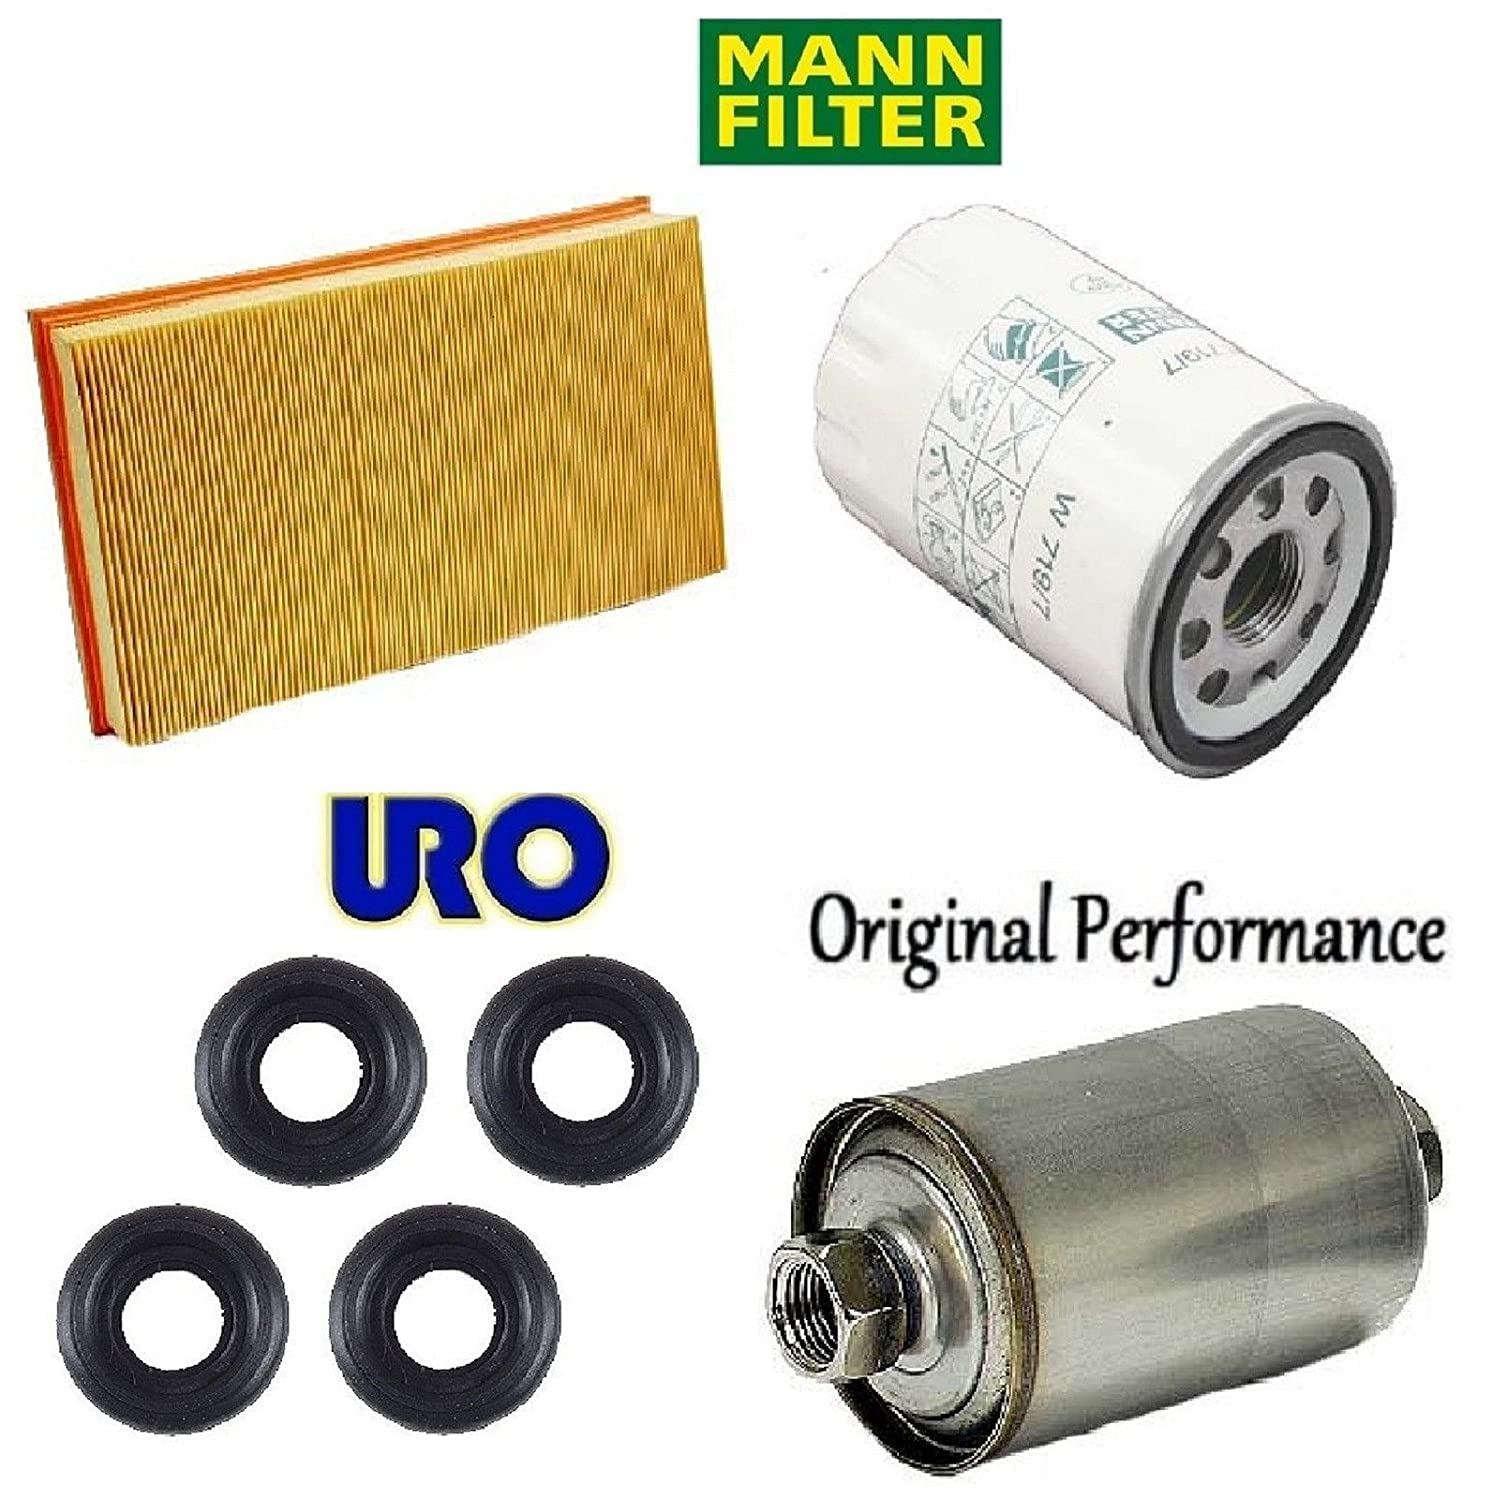 Tune Up Kit Air Oil Fuel Filters Cover Bolts for Jaguar XK8 Base; V8; 4.0L; 3996cc; GAS; Naturally Aspirated; FI; AJV8 Eng.; Eng. VIN 2; For Center Bolts of Valve Cover 1998